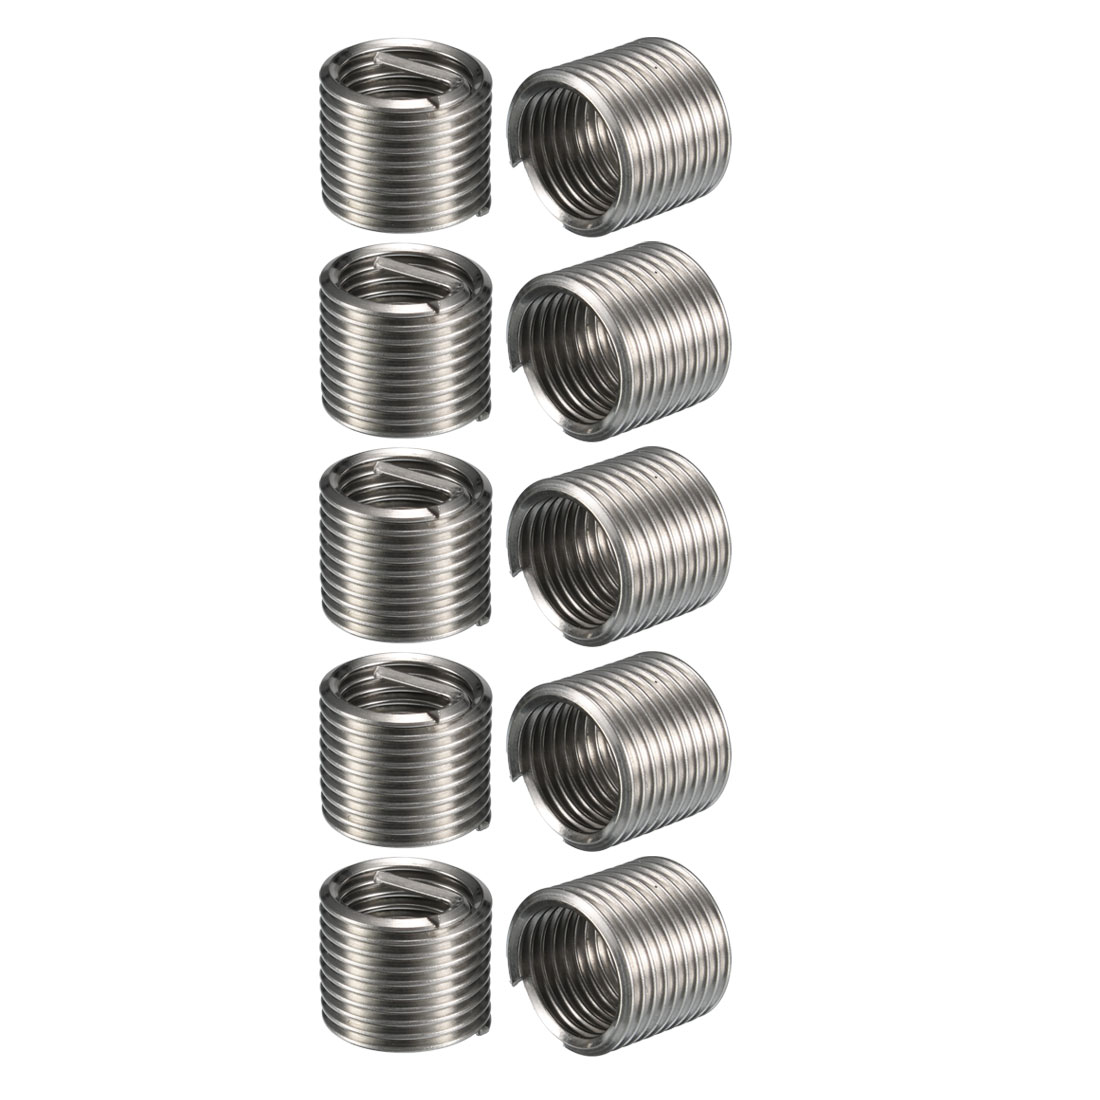 10Pcs M16 Inner Thread 24mm Installed Length Stainless Steel Helical Coil Insert